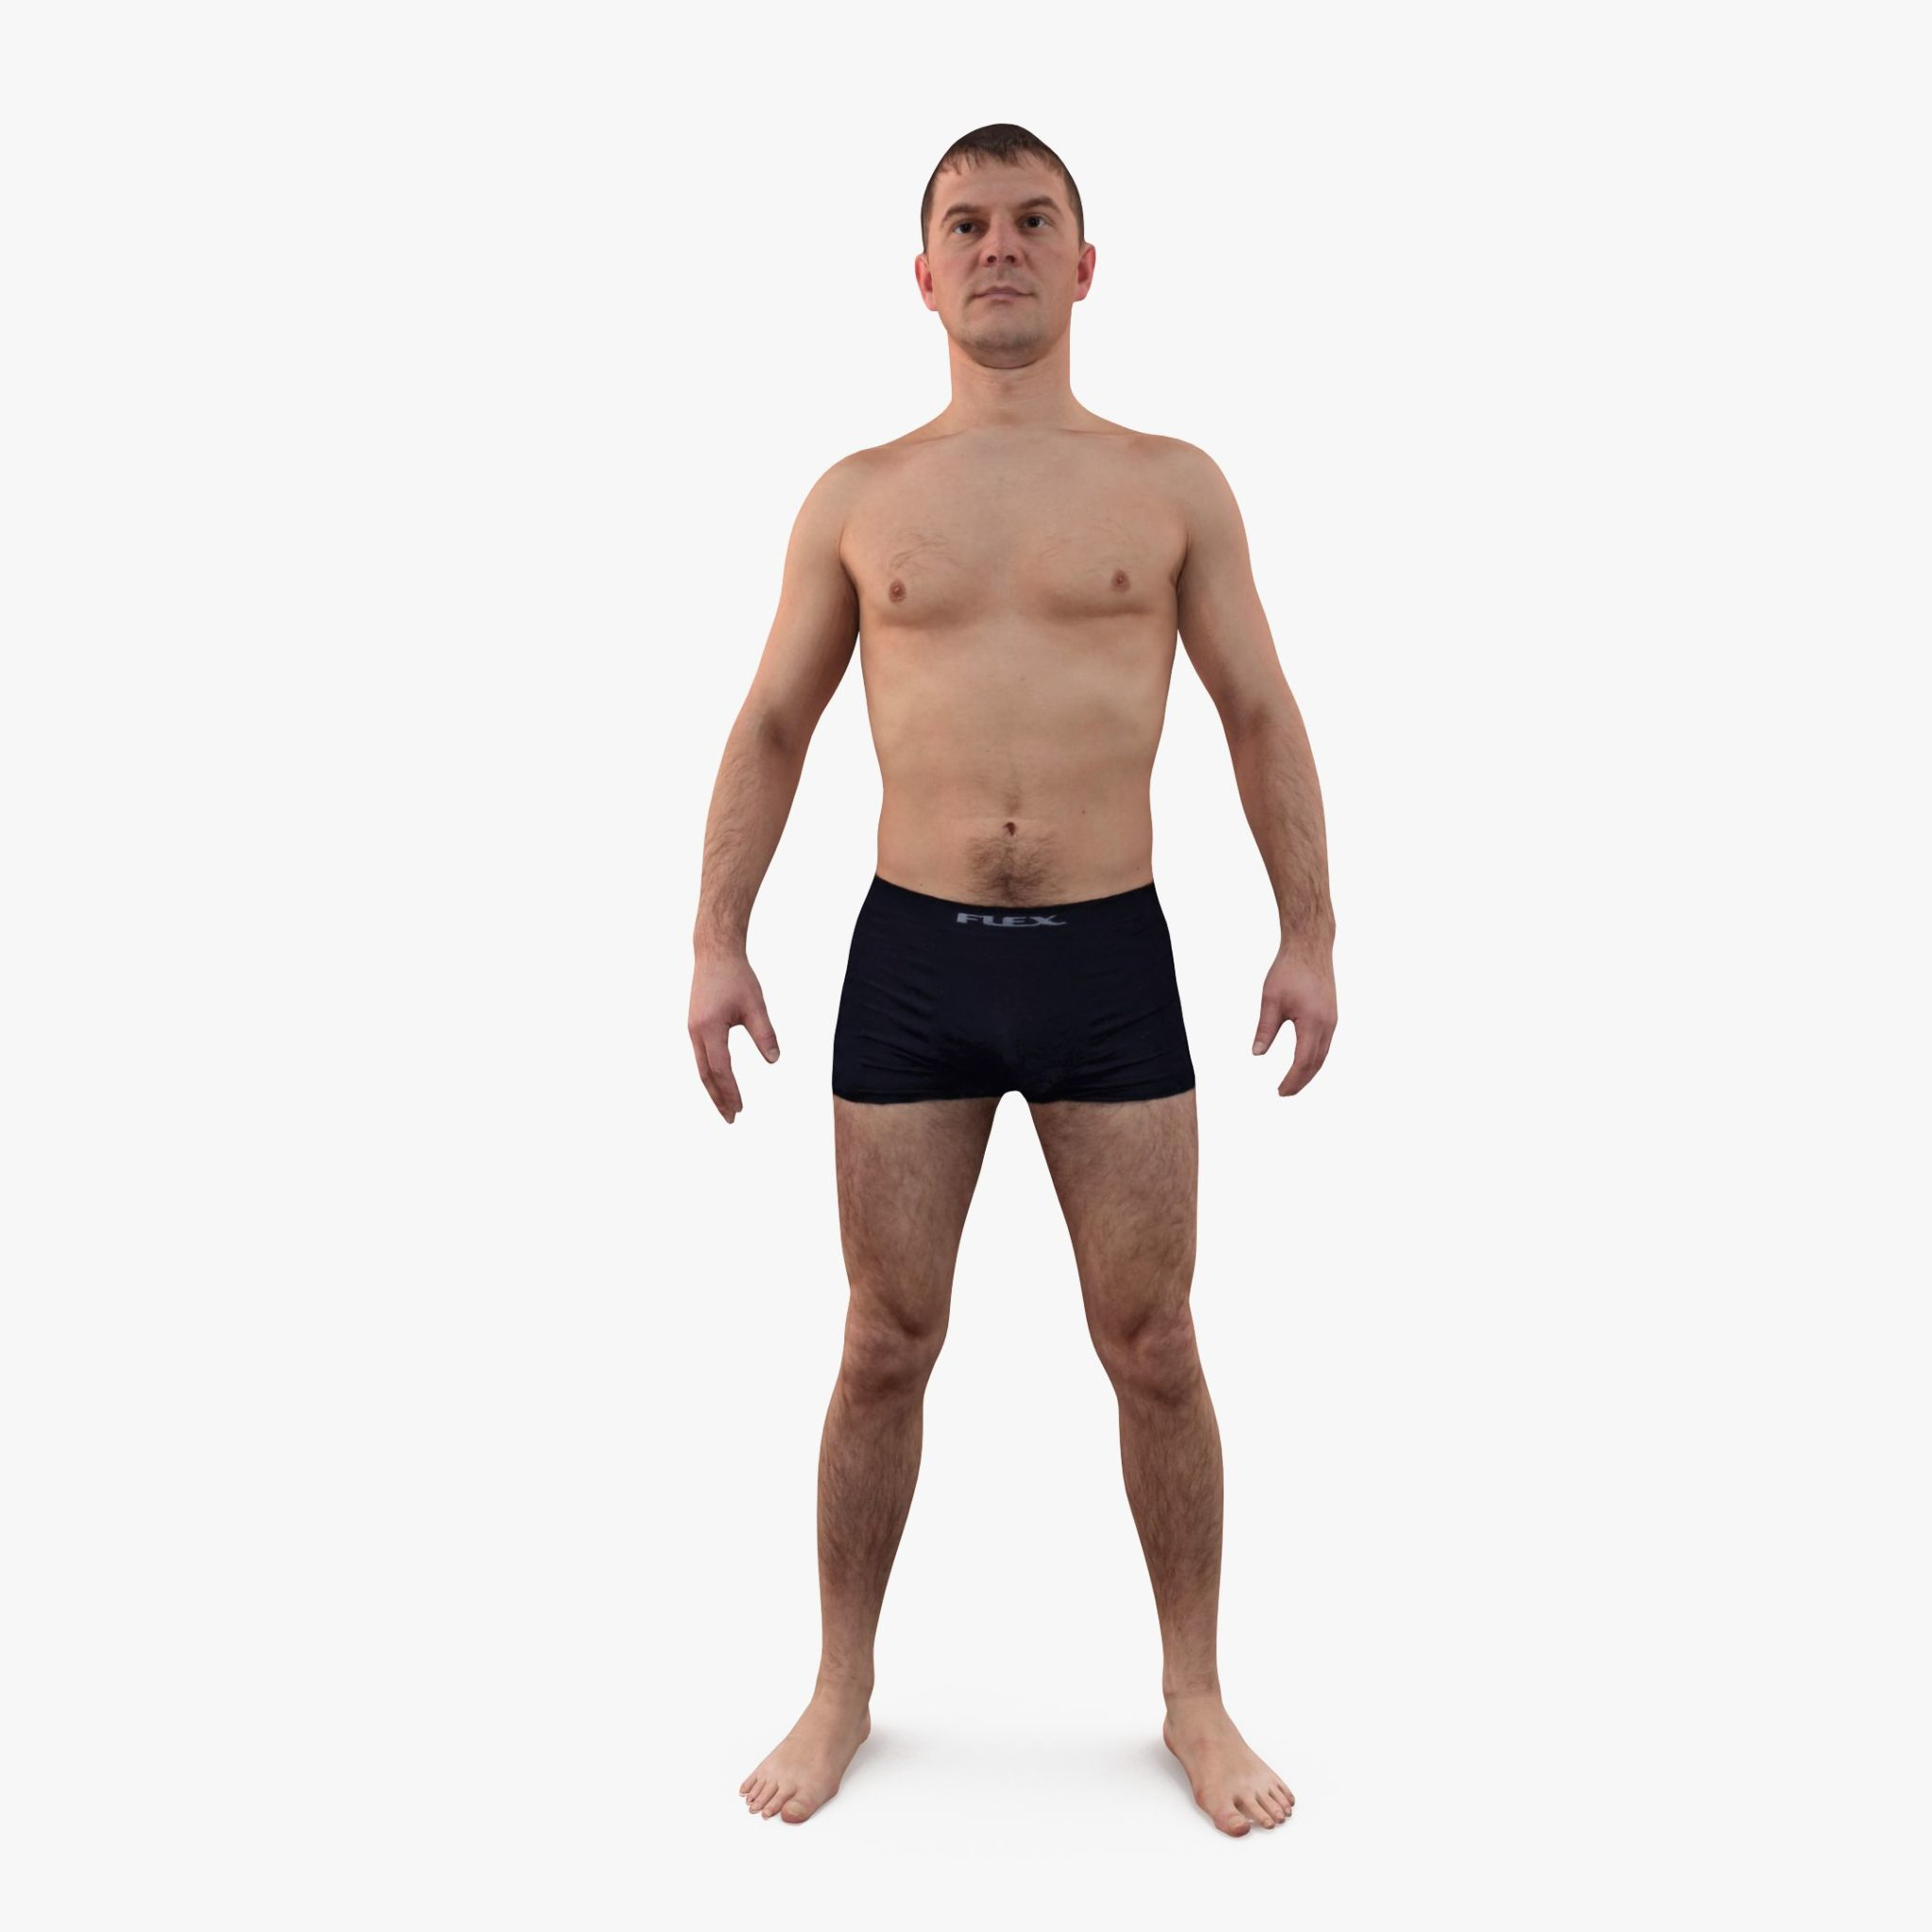 Topless Man Apose 3D Model | 3DTree Scanning Studio